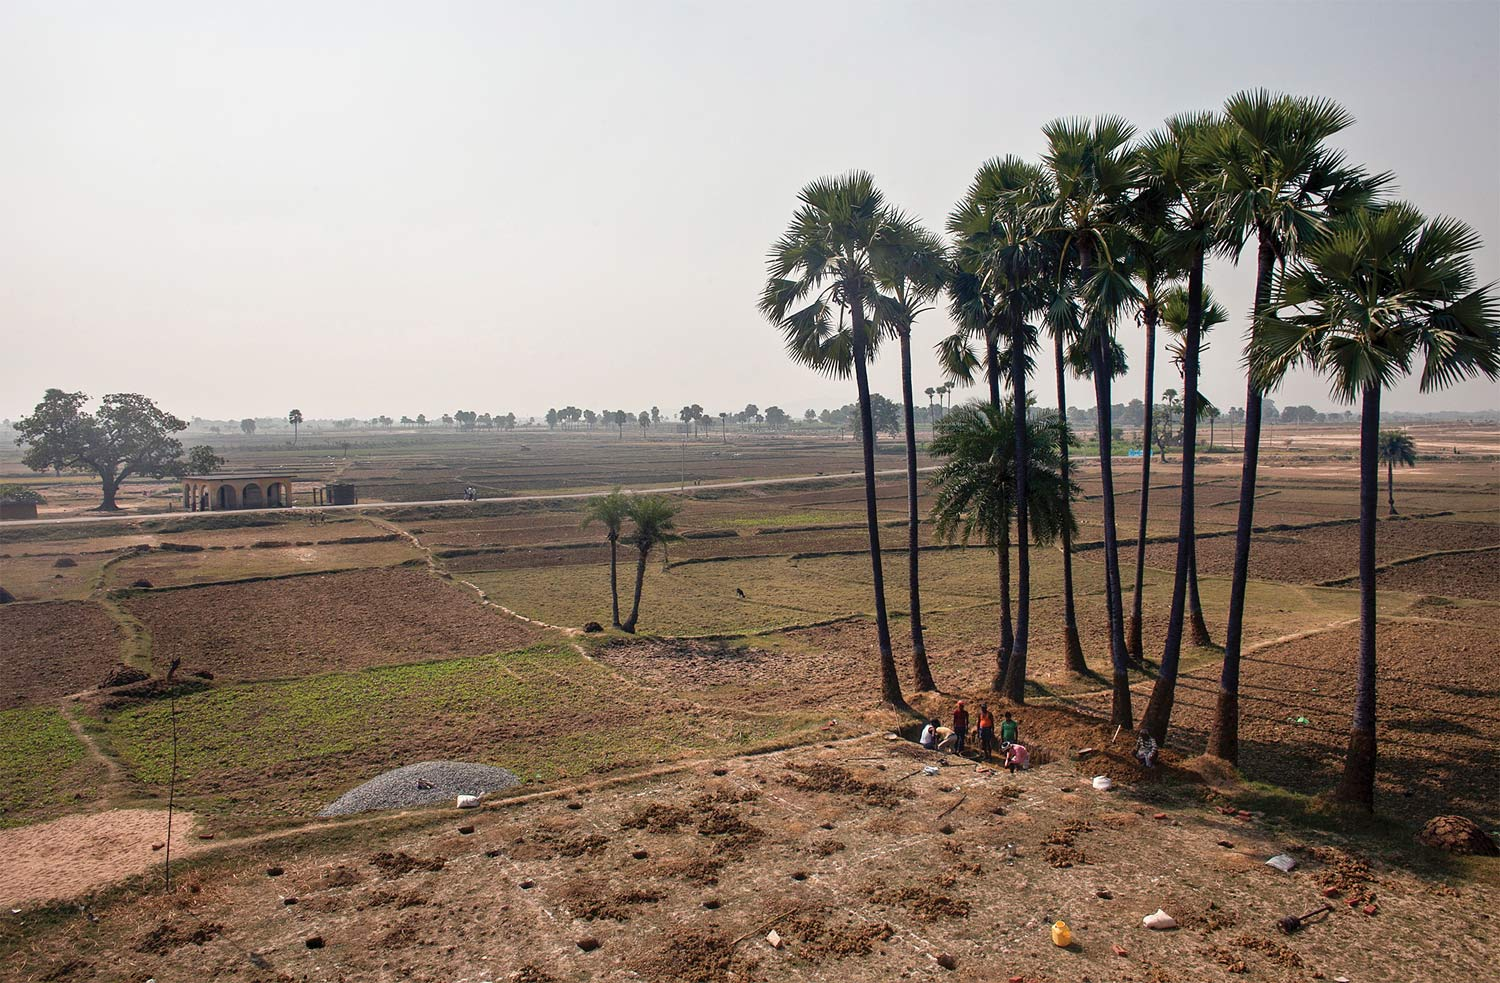 On the road in Bihar, 2013.